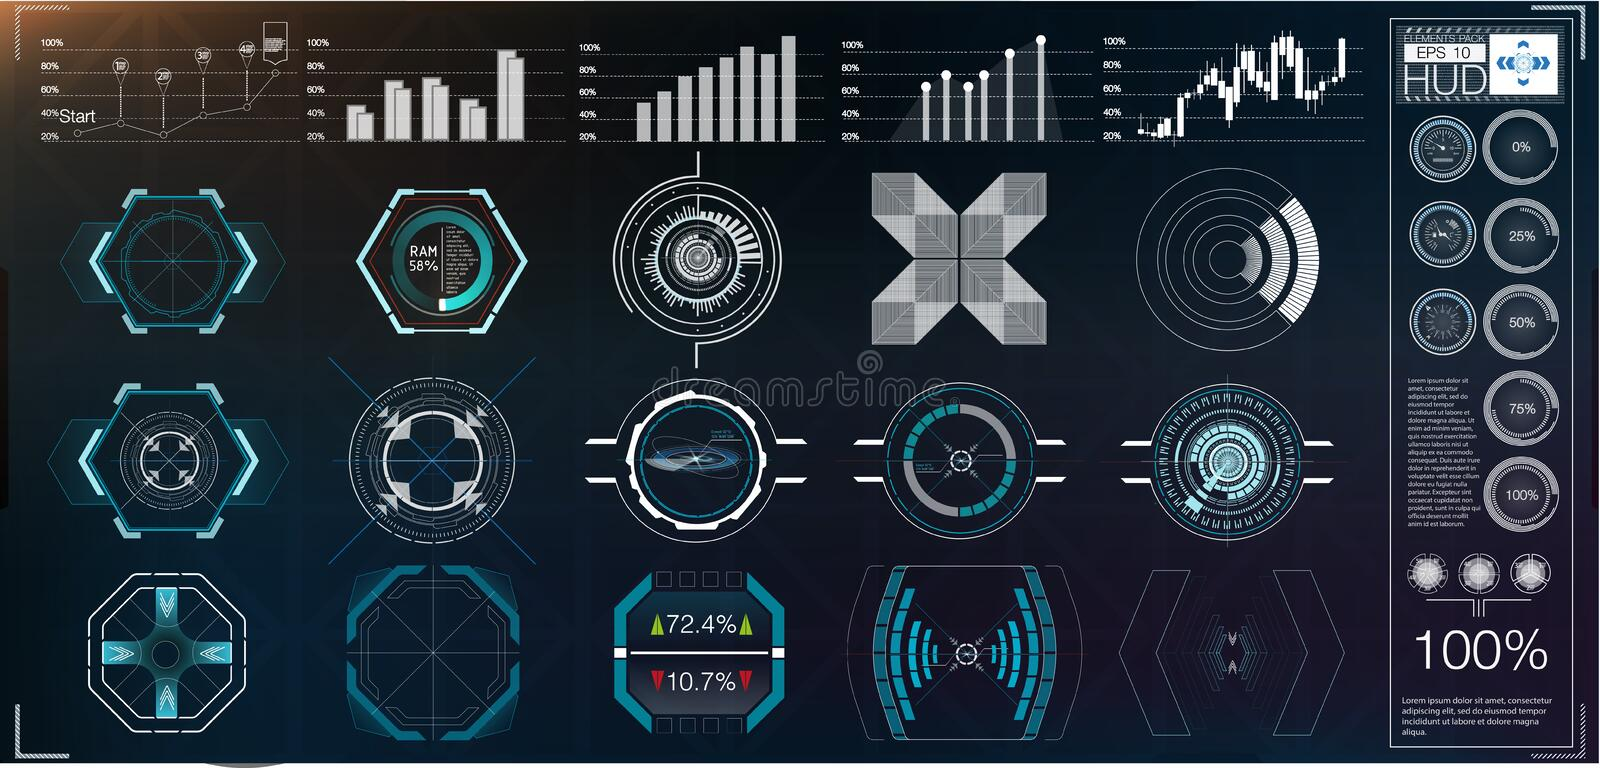 A large package of hud elements, graphics, displays, analog and digital instruments, radar scales. Abstract HUD. vector illustration